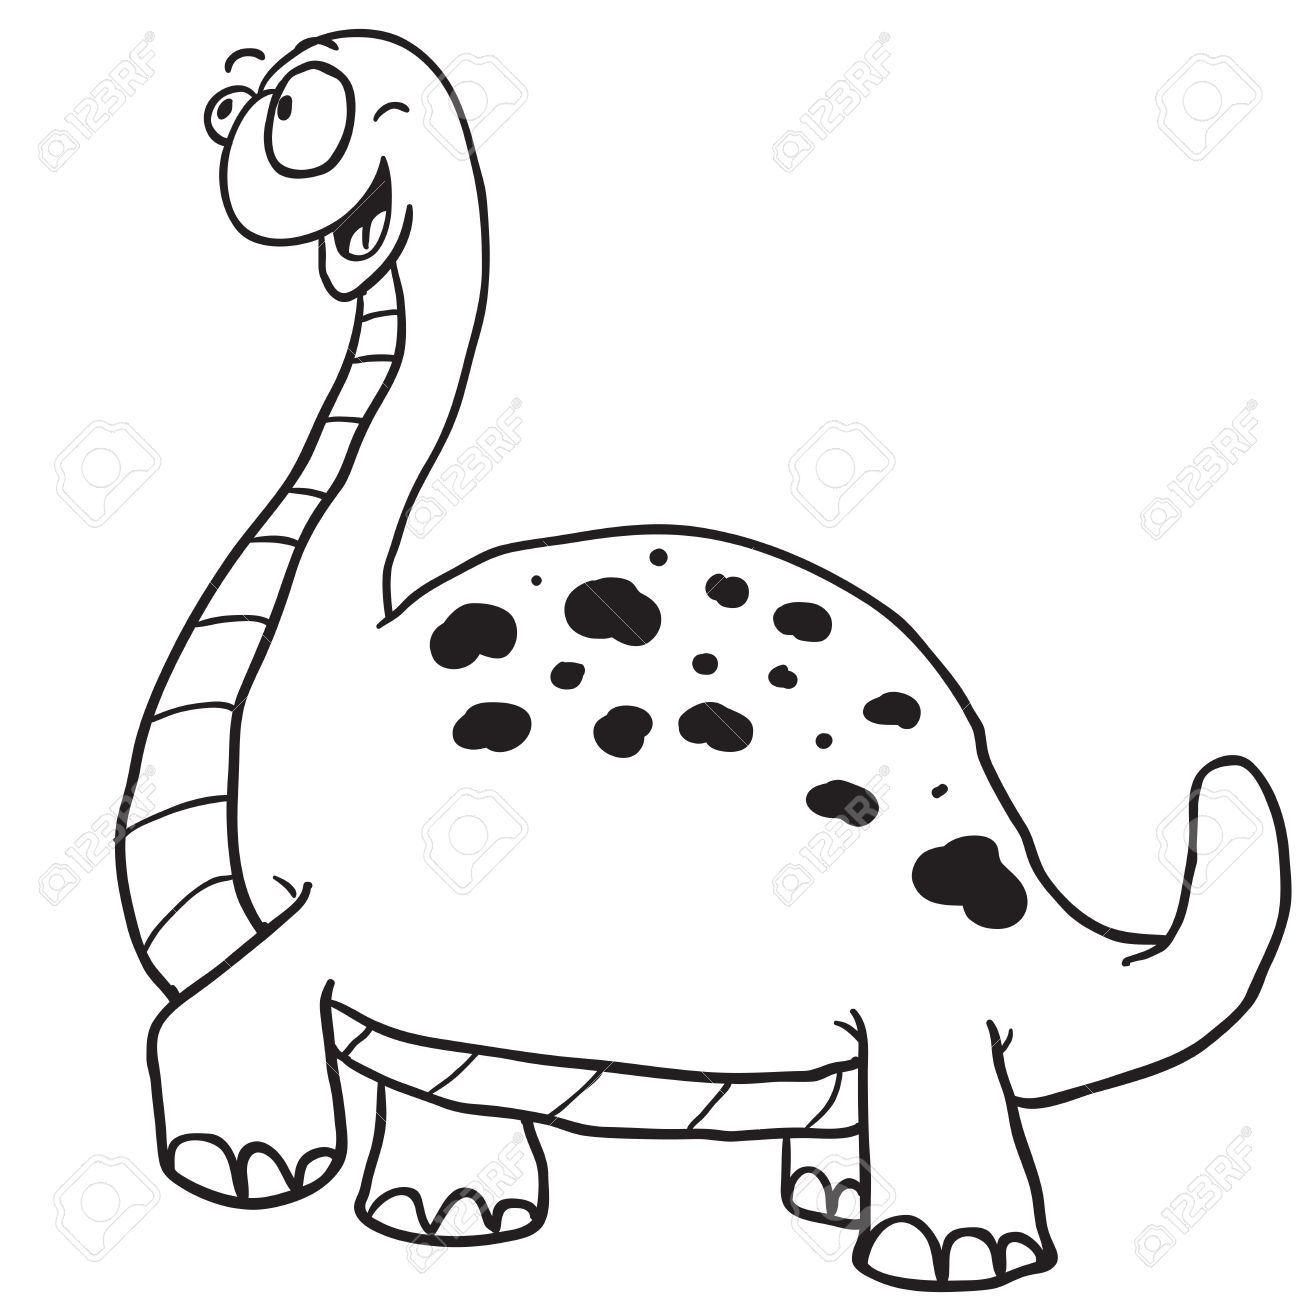 1300x1300 Simple Black And White Dinosaur Cartoon Royalty Free Cliparts